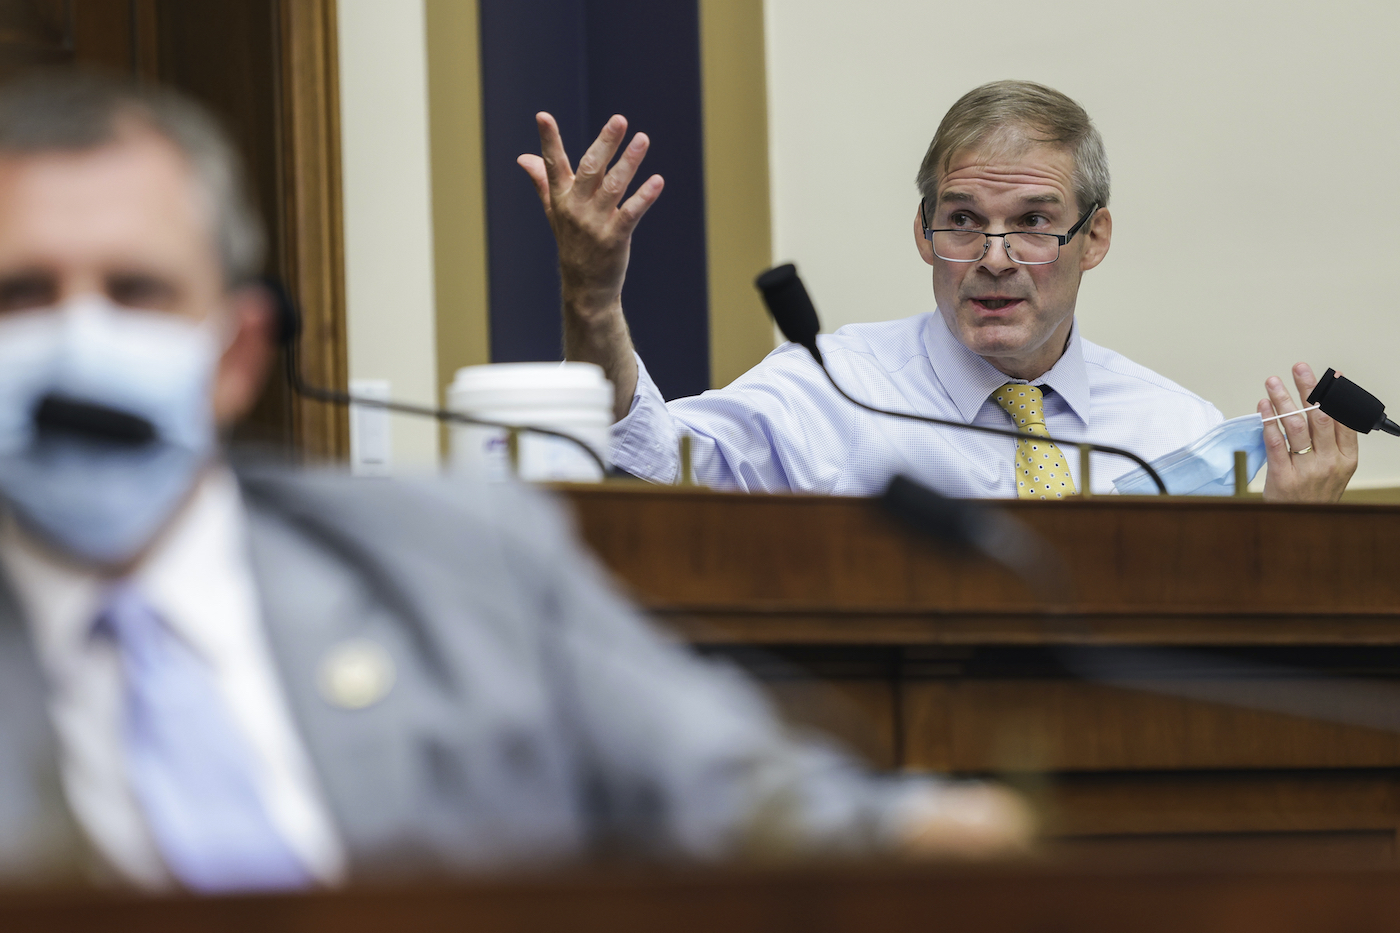 Rep. Jim Jordan, R-Ohio, speaks during a House Judiciary subcommittee hearing on antitrust on Capitol Hill on Wednesday, July 29, 2020, in Washington. (Graeme Jennings/Pool via AP)